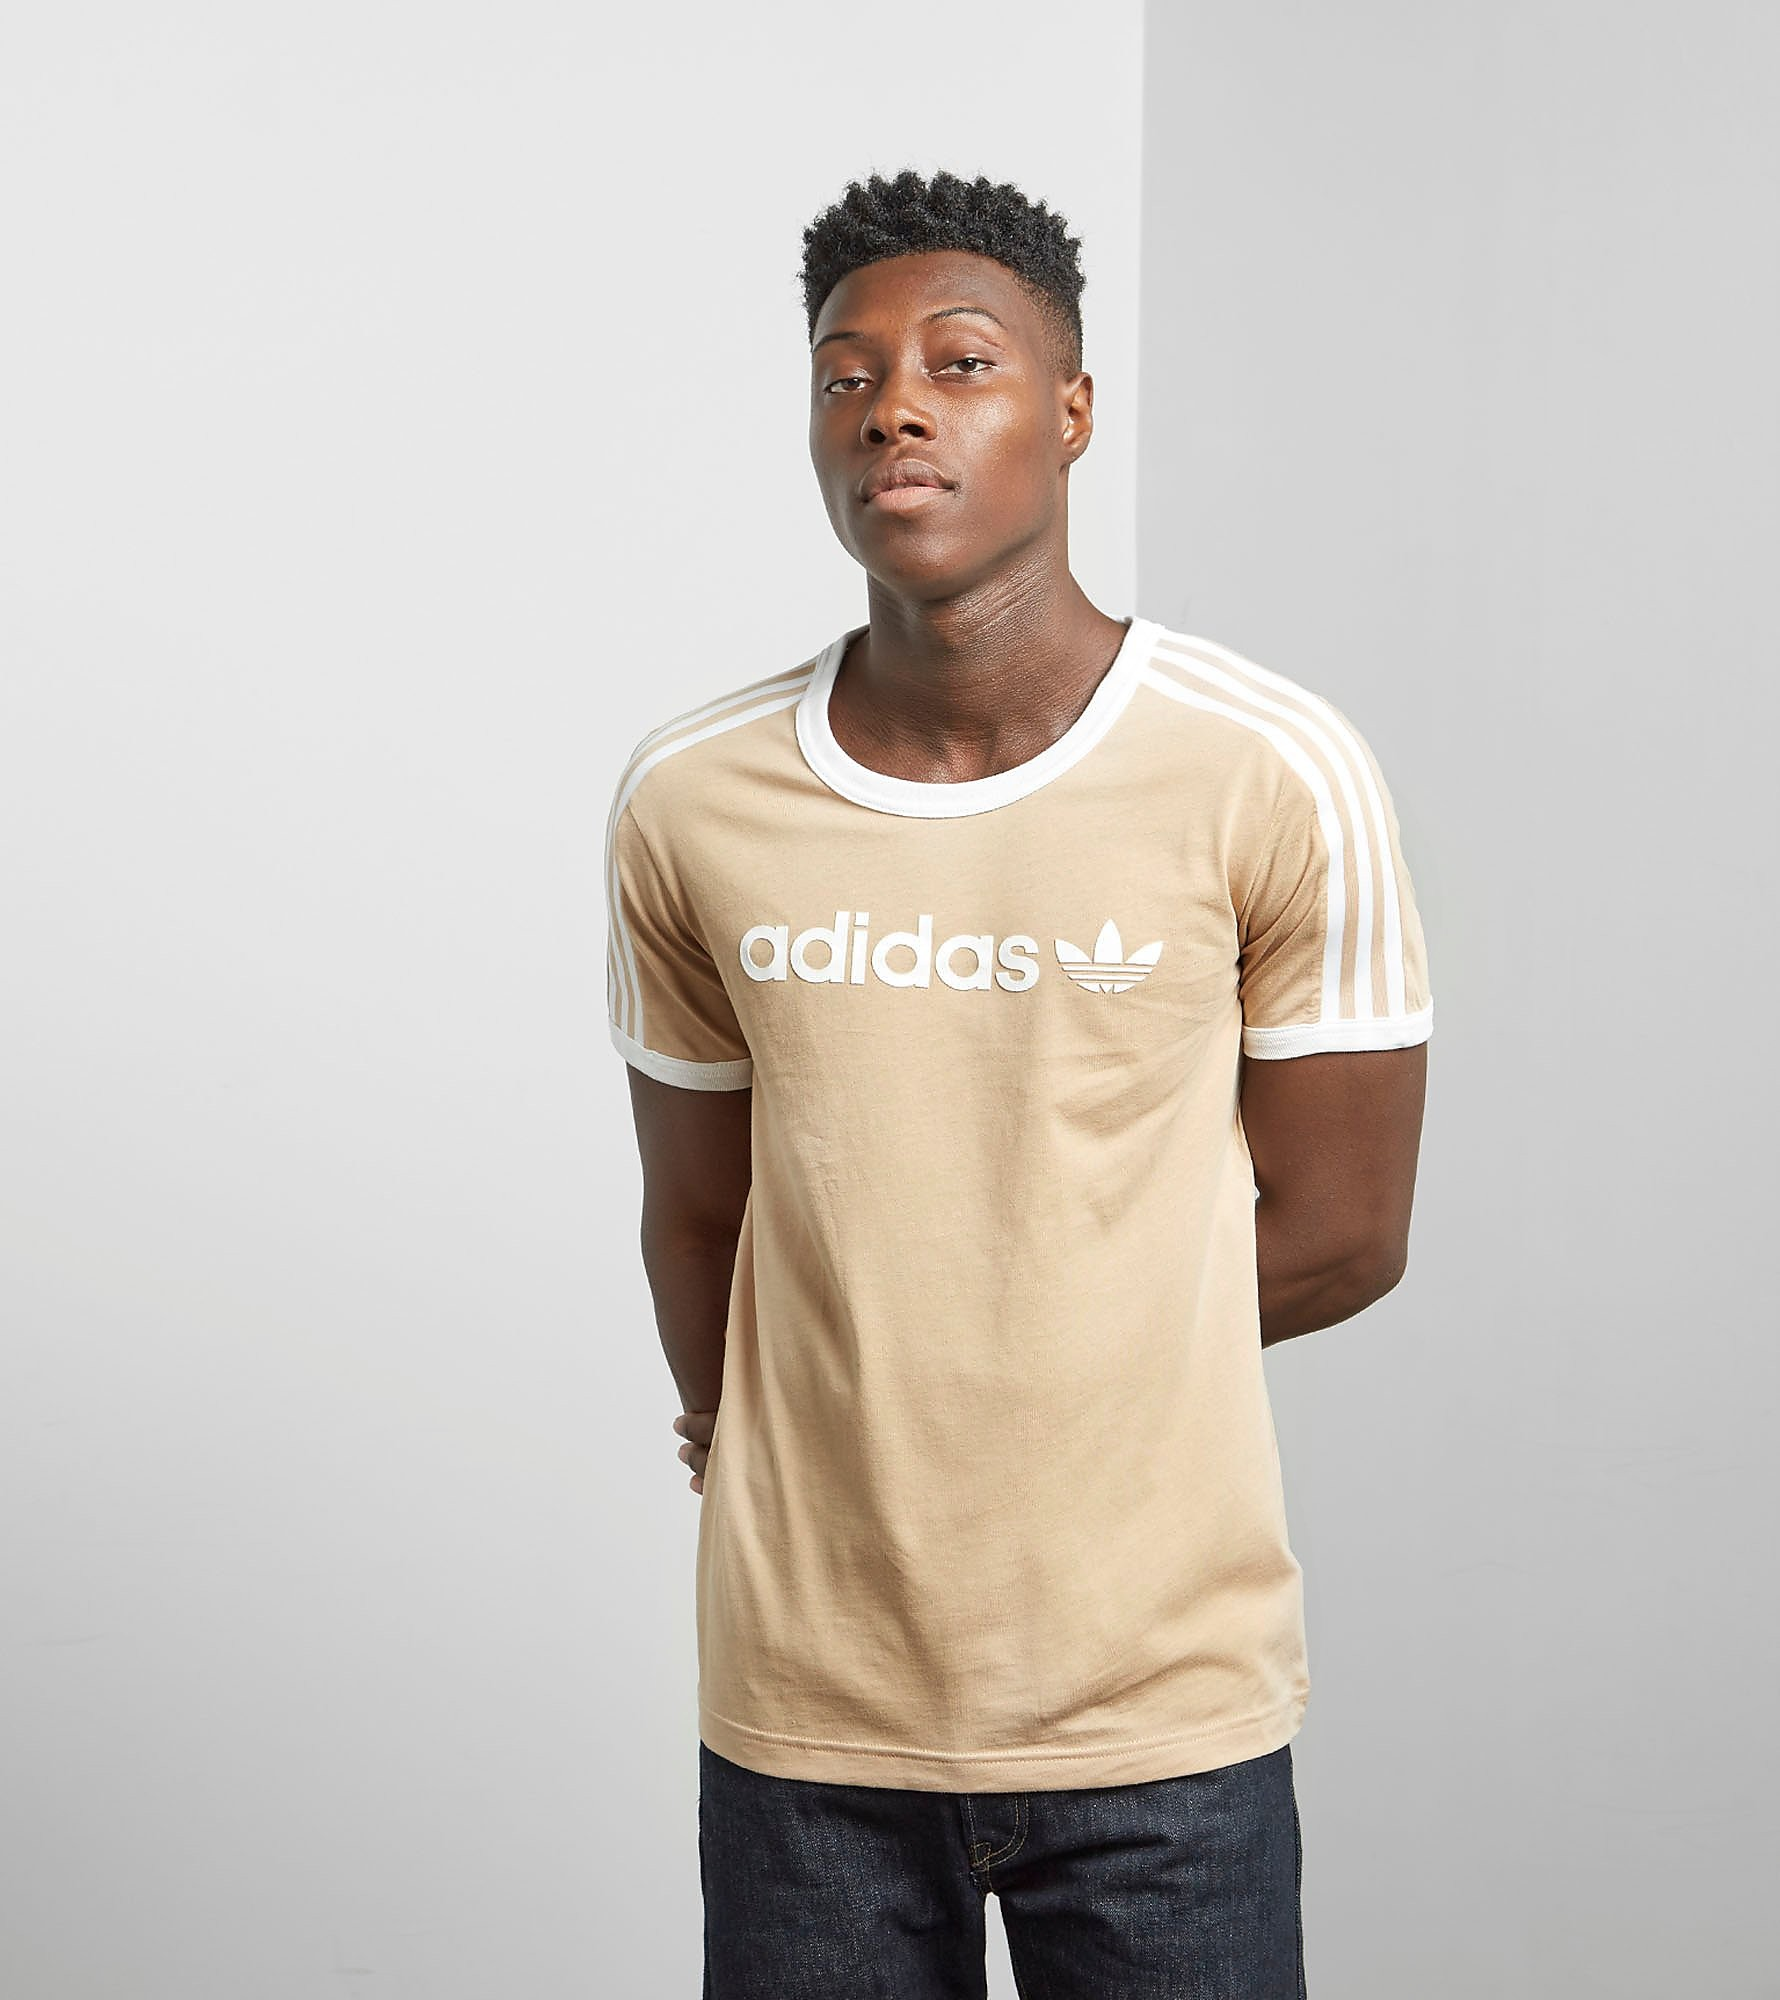 adidas Originals Camiseta Linear en exclusiva para size?